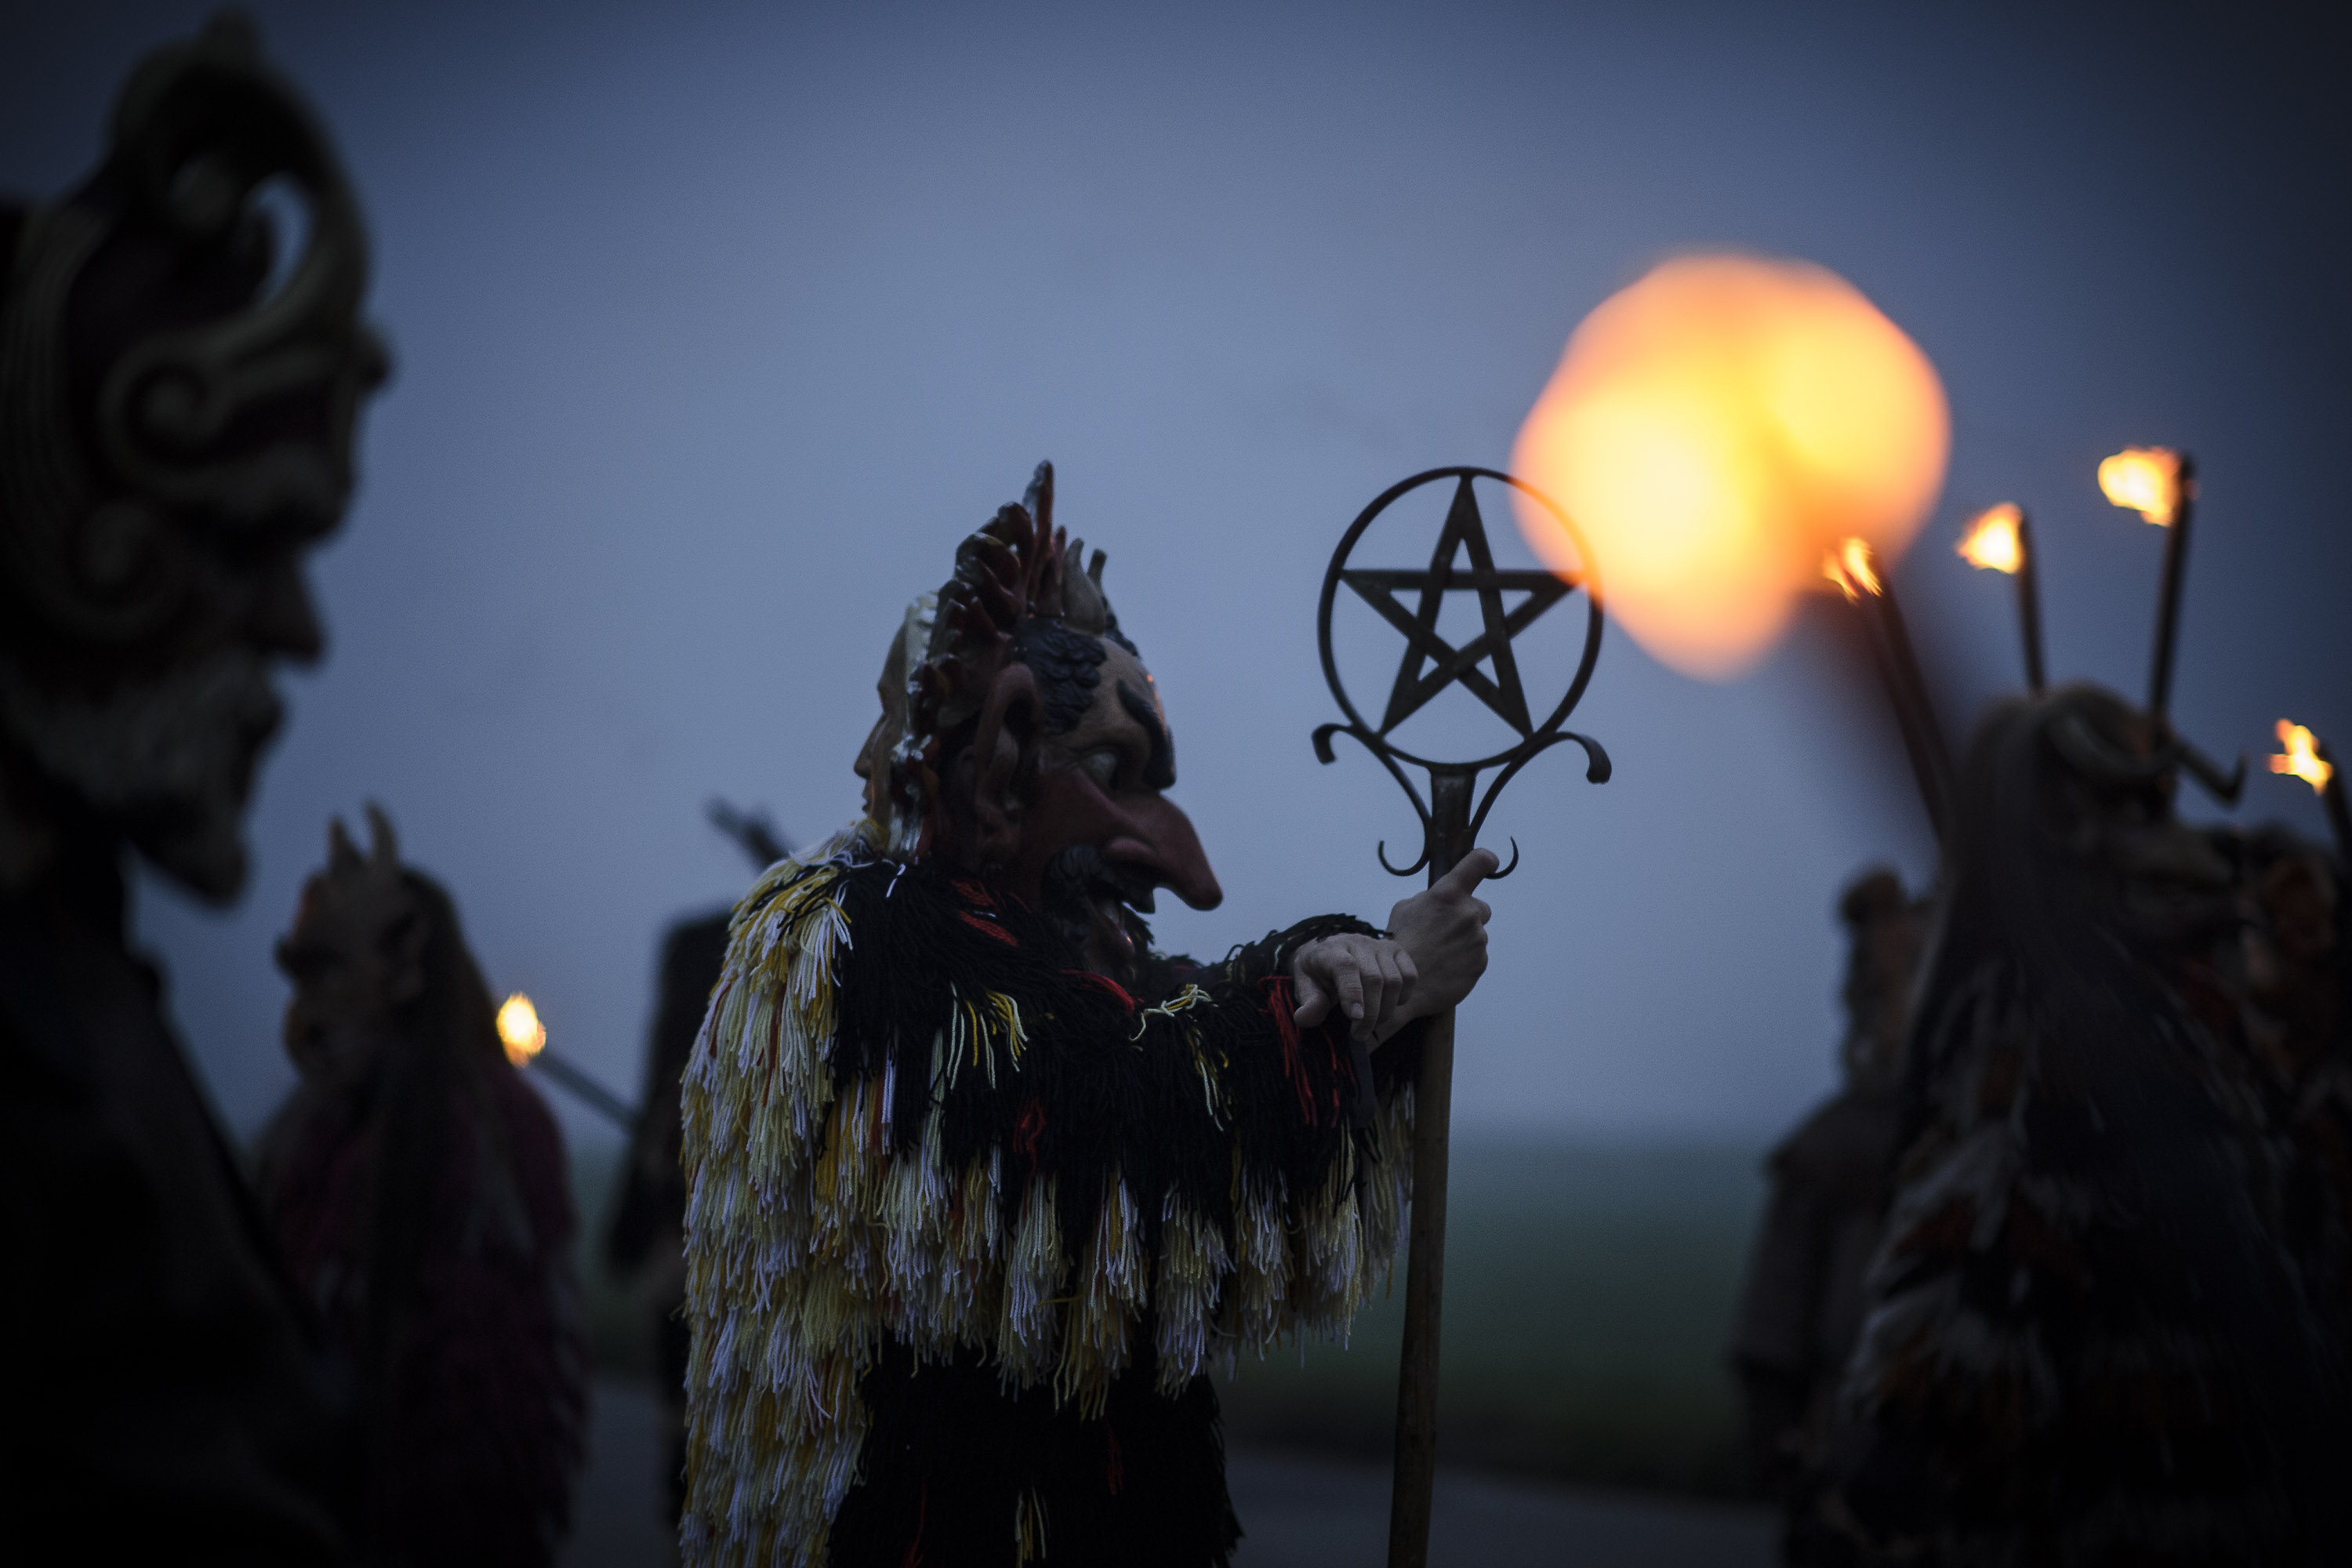 Participants dressed as Perchten roam village streets to chase away evil winter spirits in the annual Perchten gathering in Bavaria on November 29, 2014 near Kirchseeon, Germany. Perchten are the mythical entourage of Perchta, a goddess in ancient southern German alpine pagan tradition, and are usually fearsome creatures with tusks and horns and covered in hair. The tradition dates back at least to the 16th century and is also related to traditions of Krampus, Teifel, Klausen and La Befana, all animal-like creatures in the German, Austrian, Italian and Swiss alpine regions whose duties include instilling fear into naughty children. (Photo by Philipp Guelland/Getty Images)